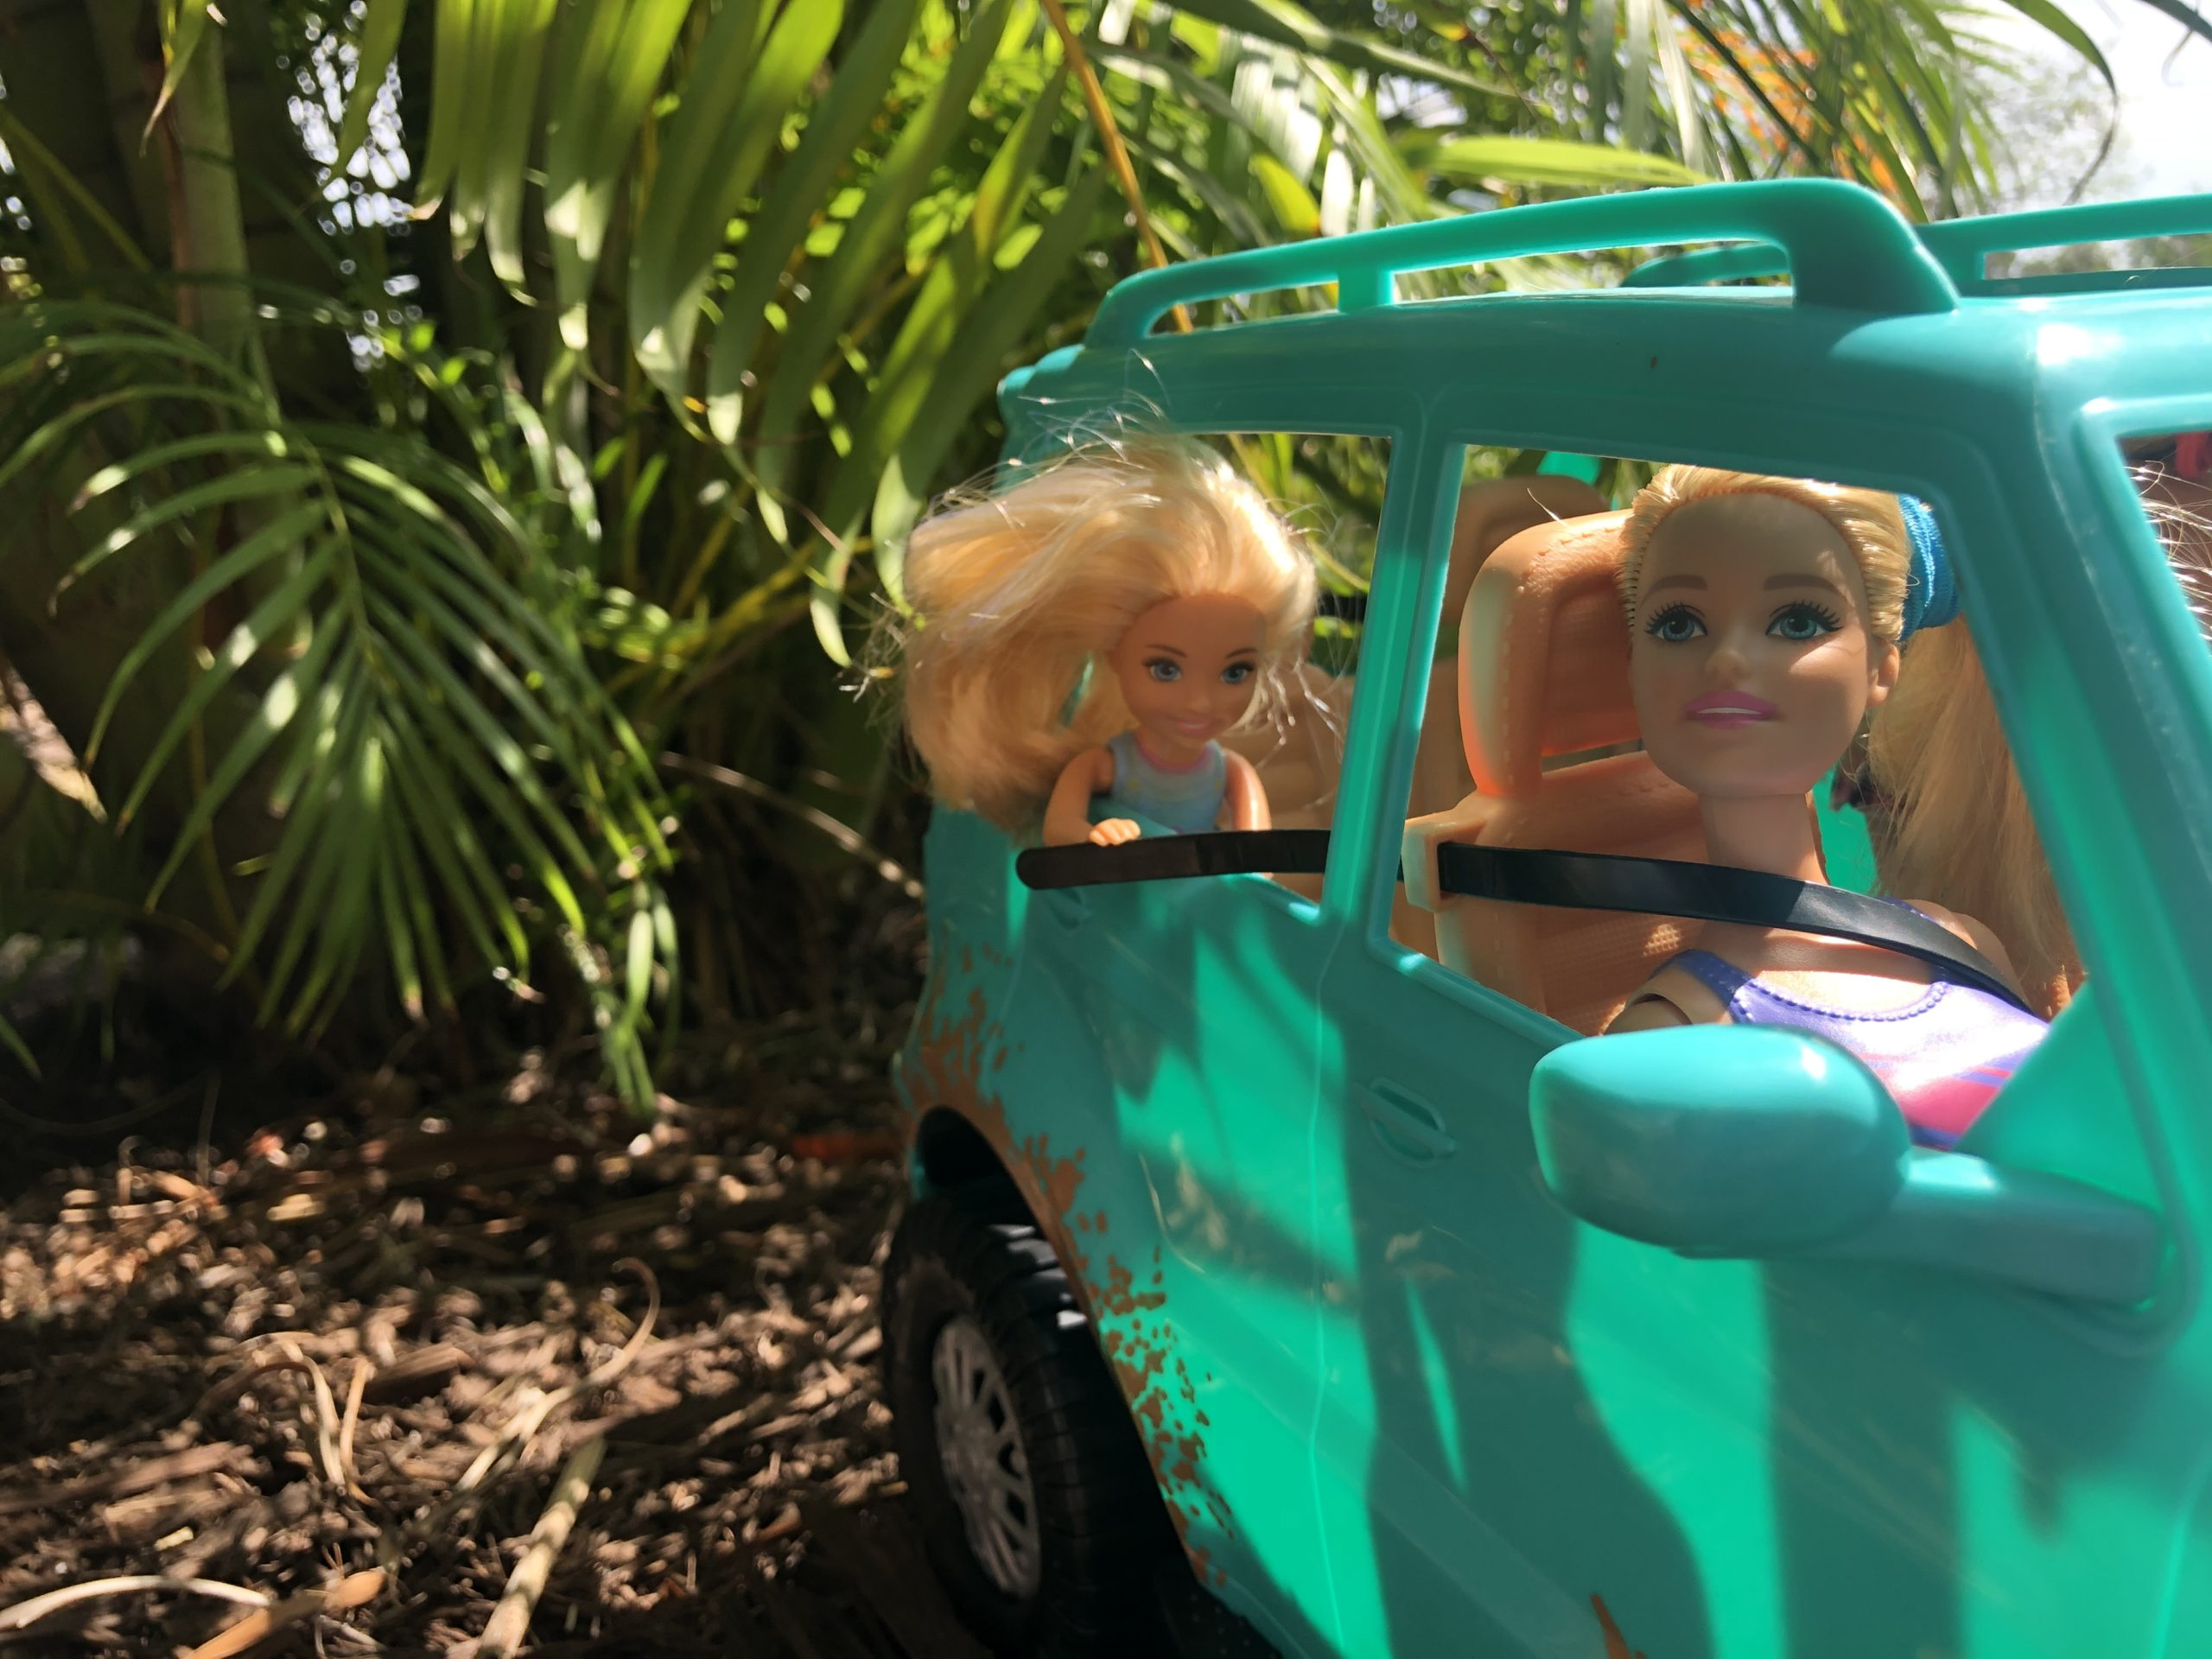 In the teal Barbie Jeep, Barbie is looking out the passenger window and Chelsea is looking out the back window.